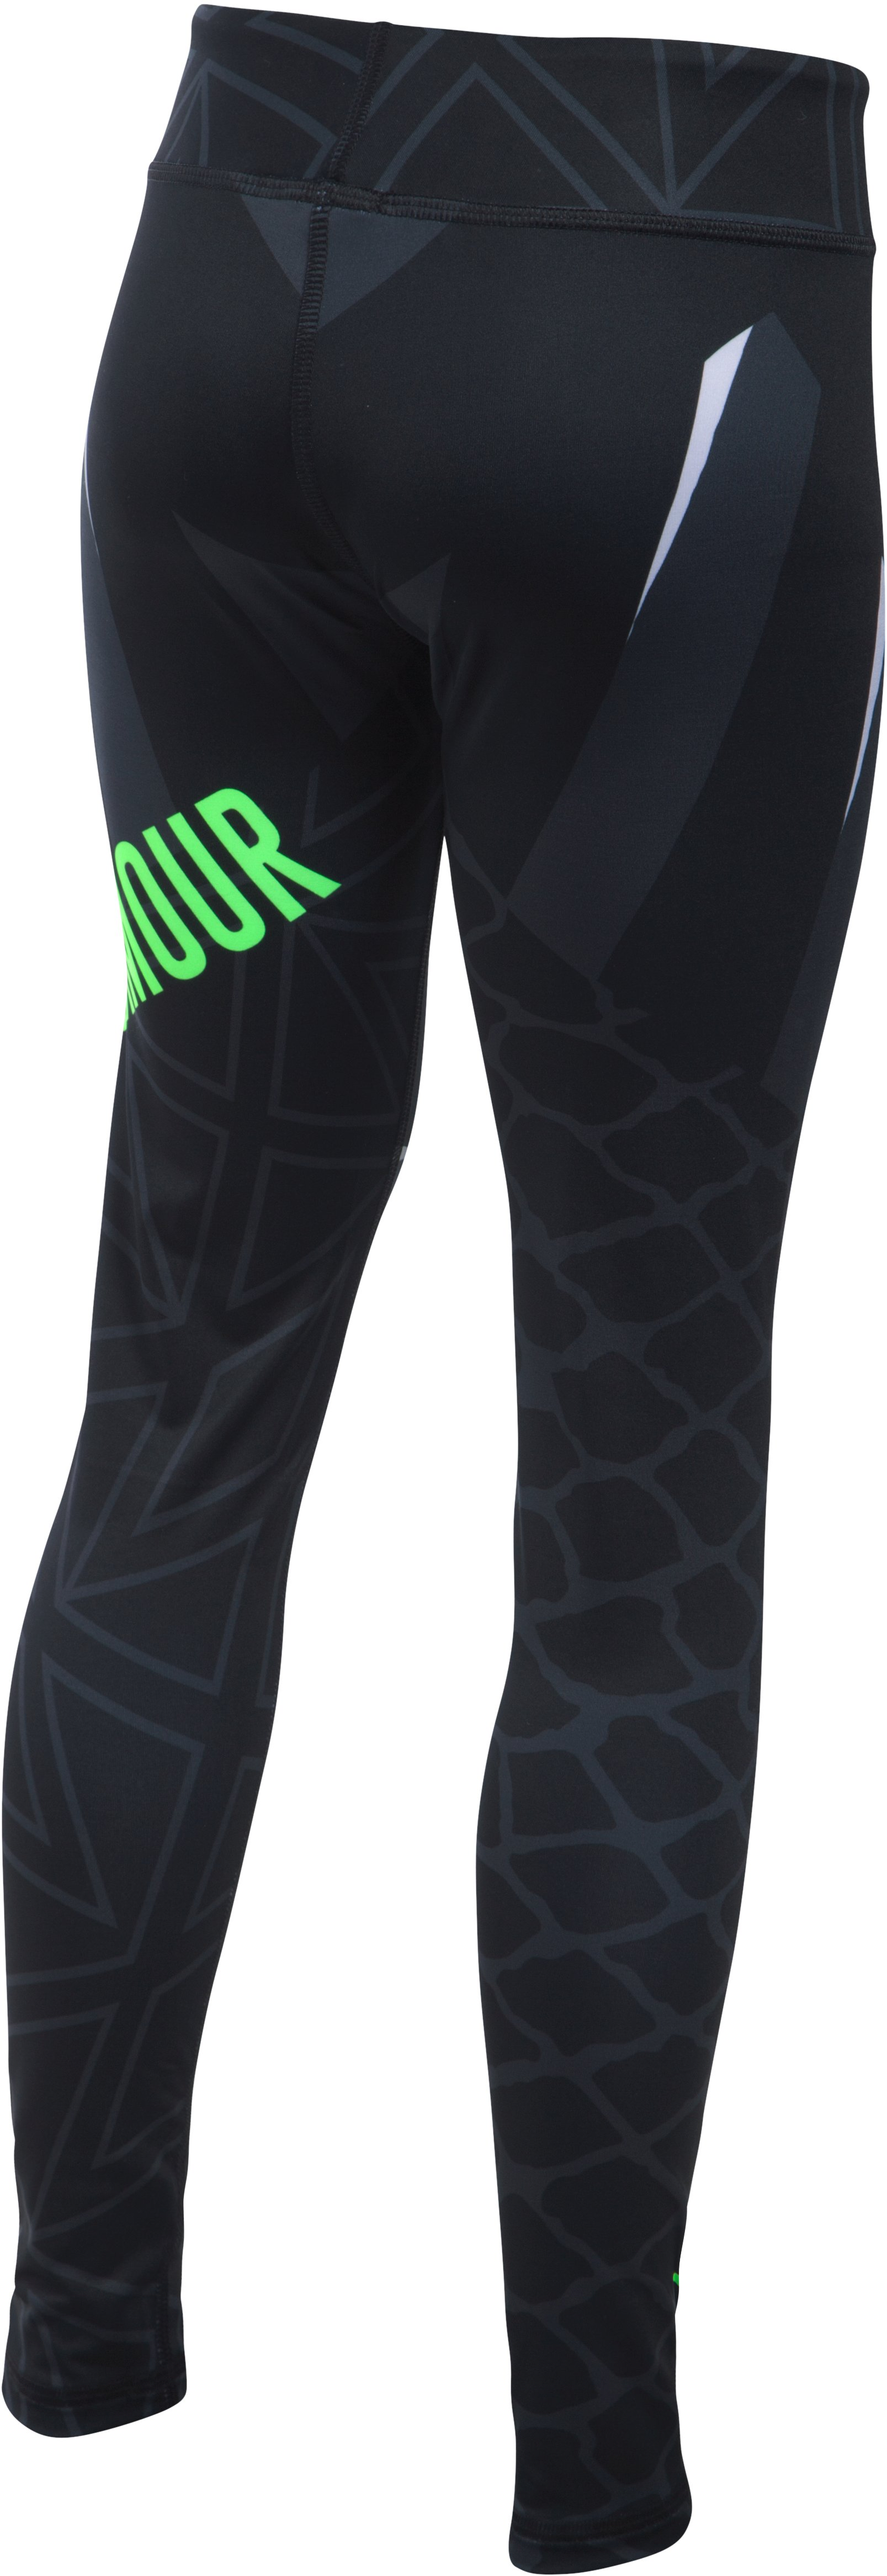 Girls' UA Mix Master Chain Grid Leggings, Black , undefined